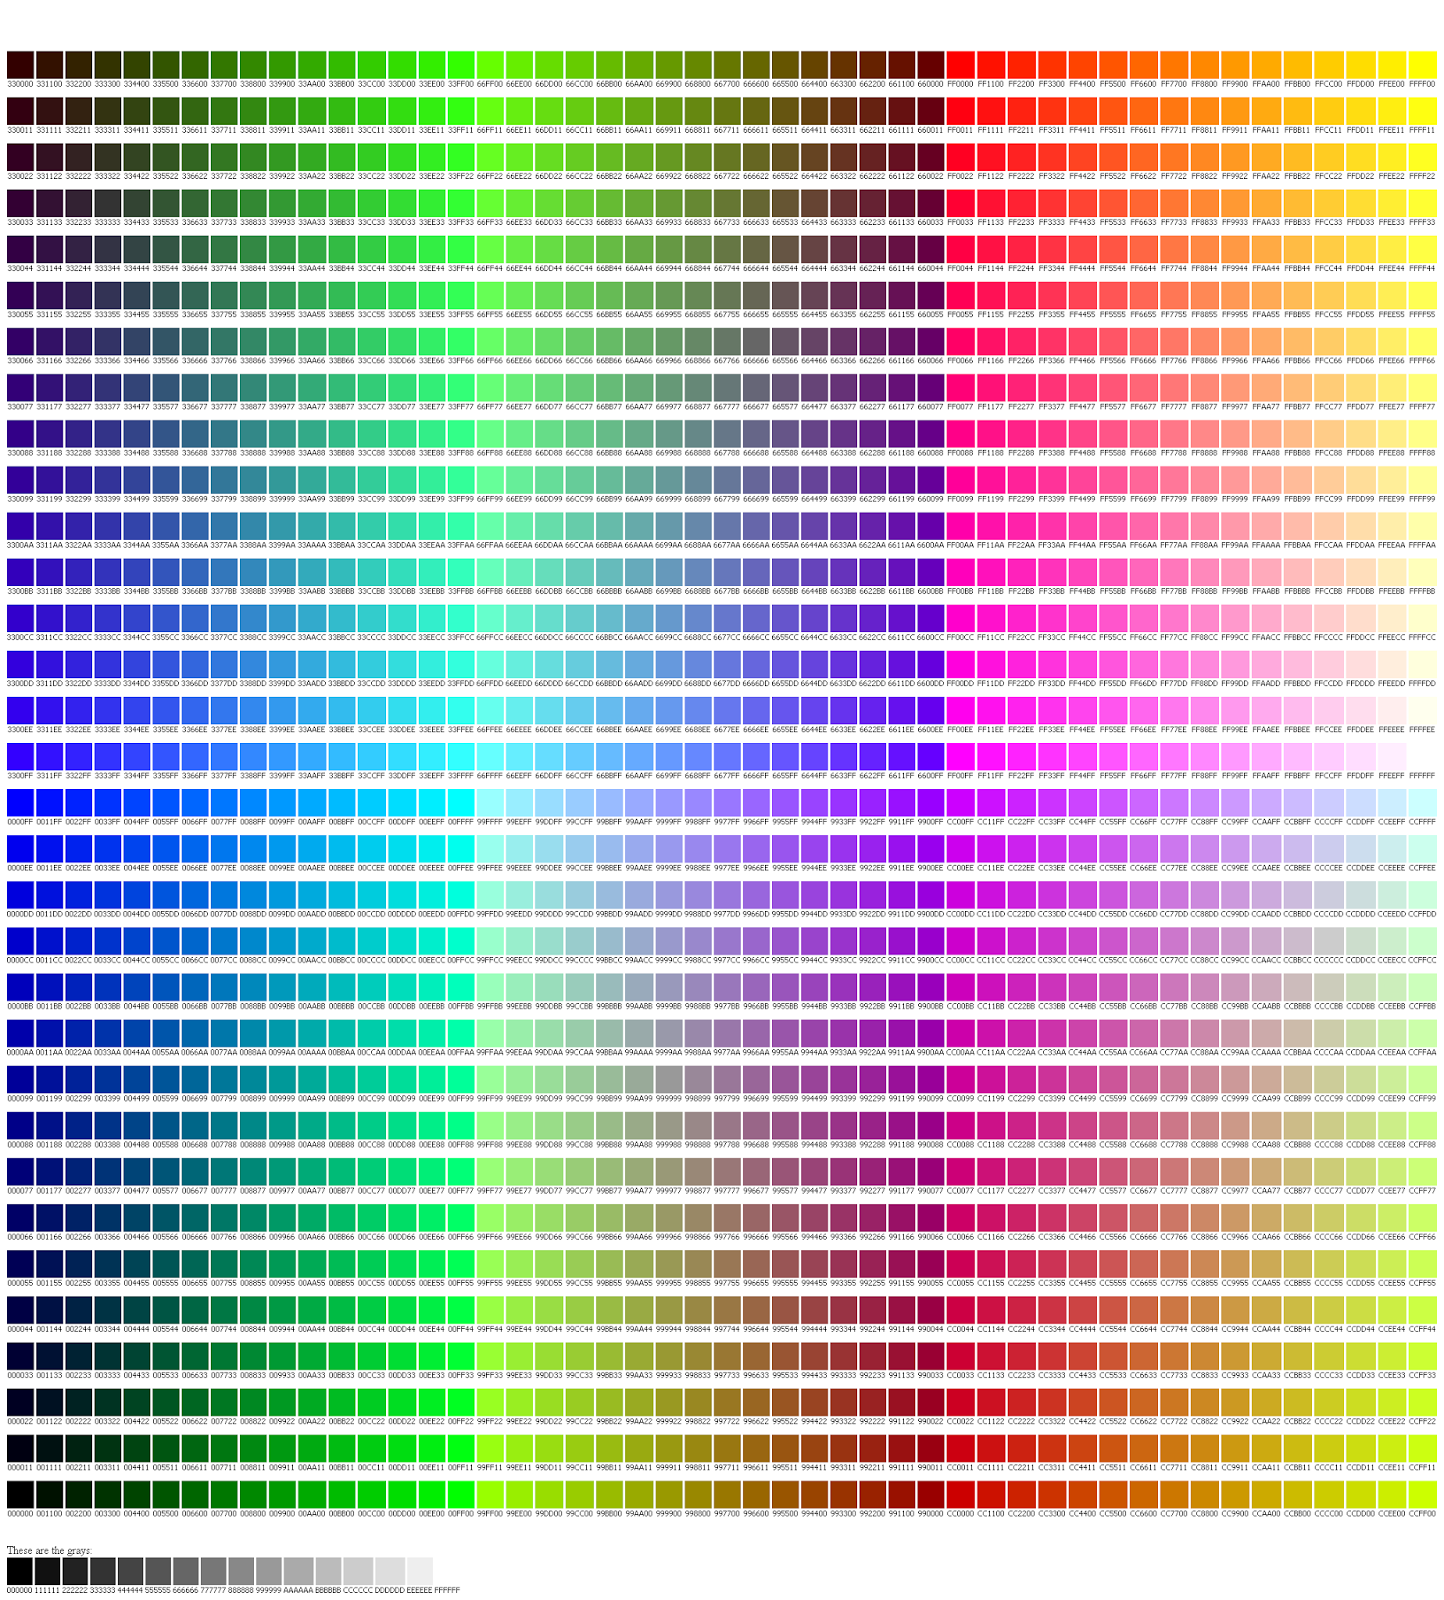 Html Colors Sorted By Hex Value Codes Techtips000